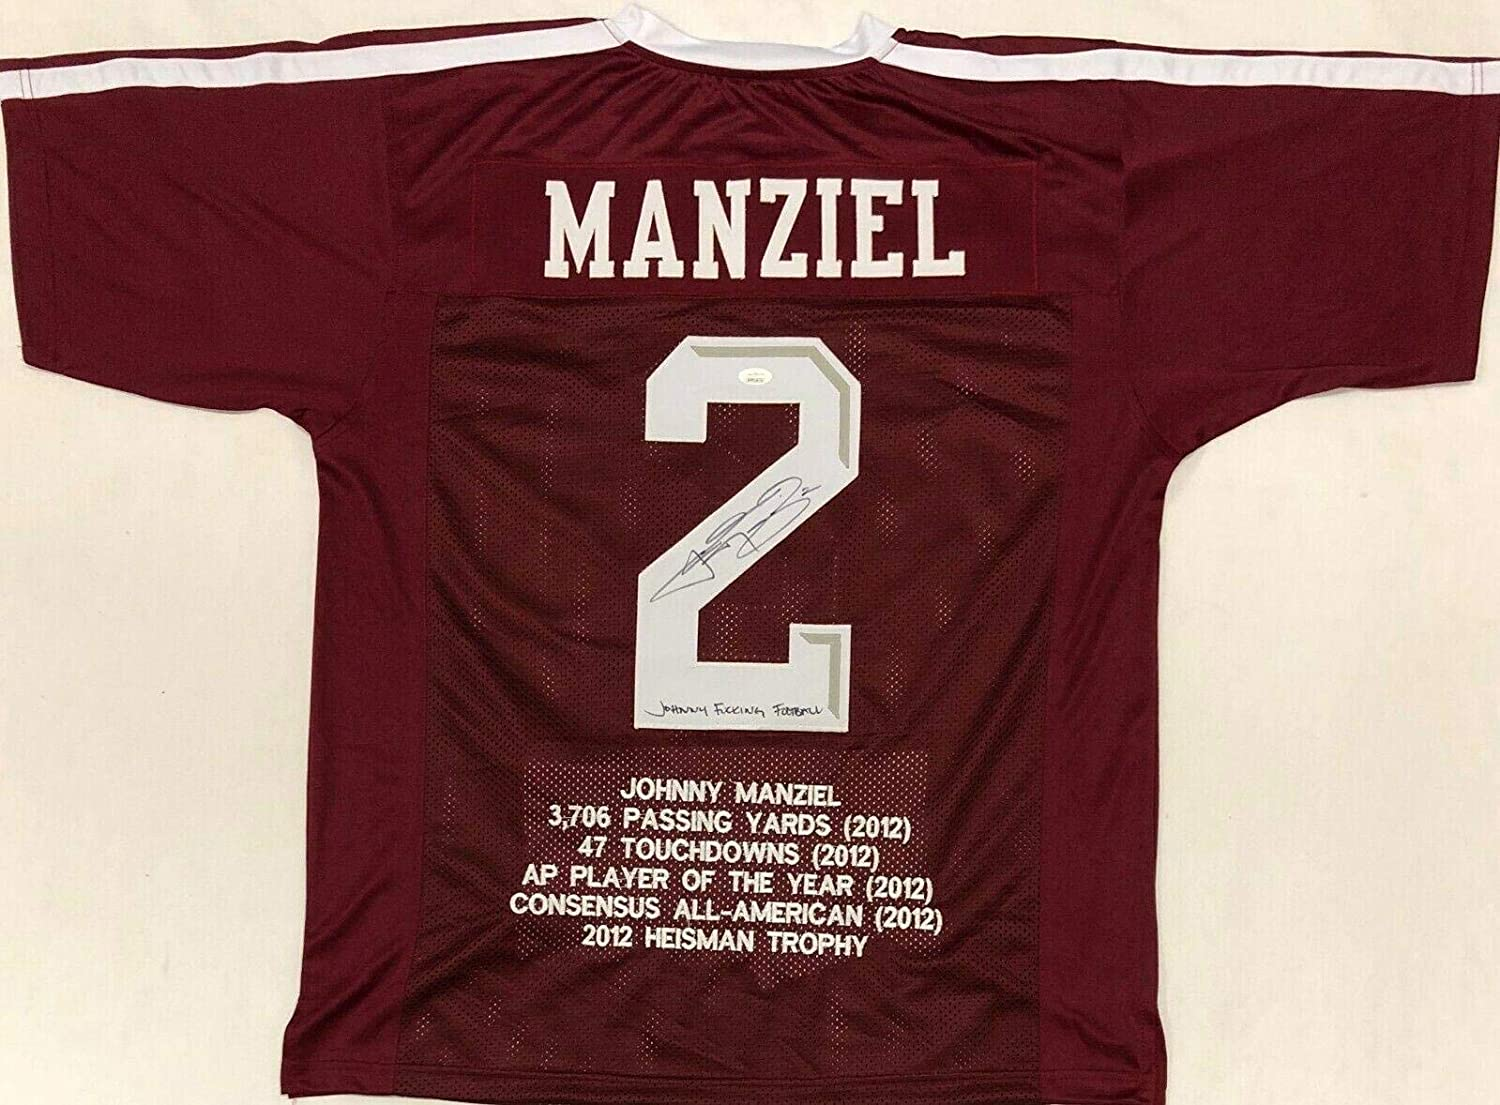 Johnny Manziel Signed Autographed Maroon Jersey JSA Johnny FN Football Stats - Autographed College Jerseys